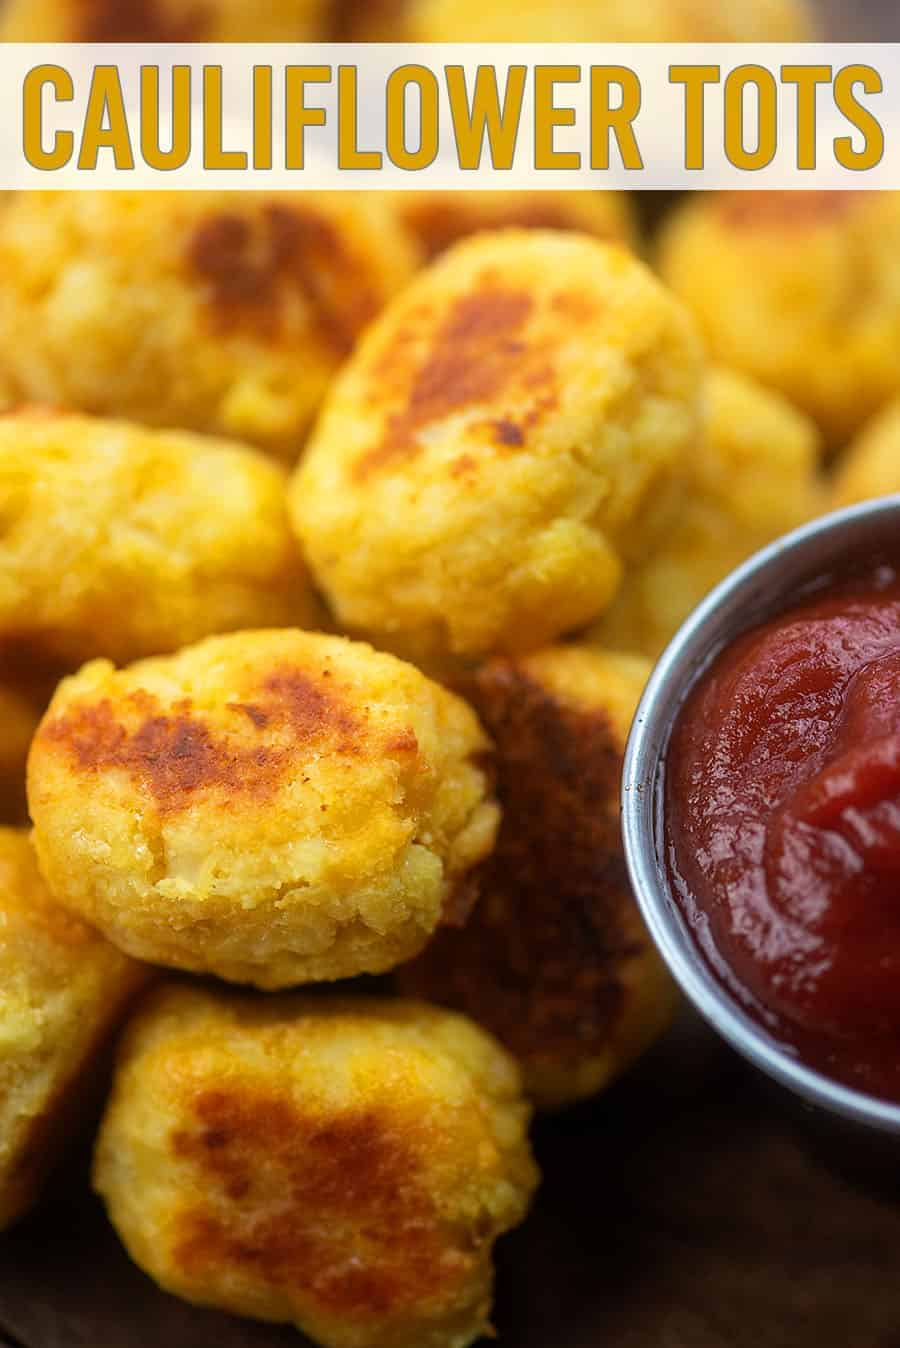 A close up of cauliflower tots piled up next to a cup of ketchup